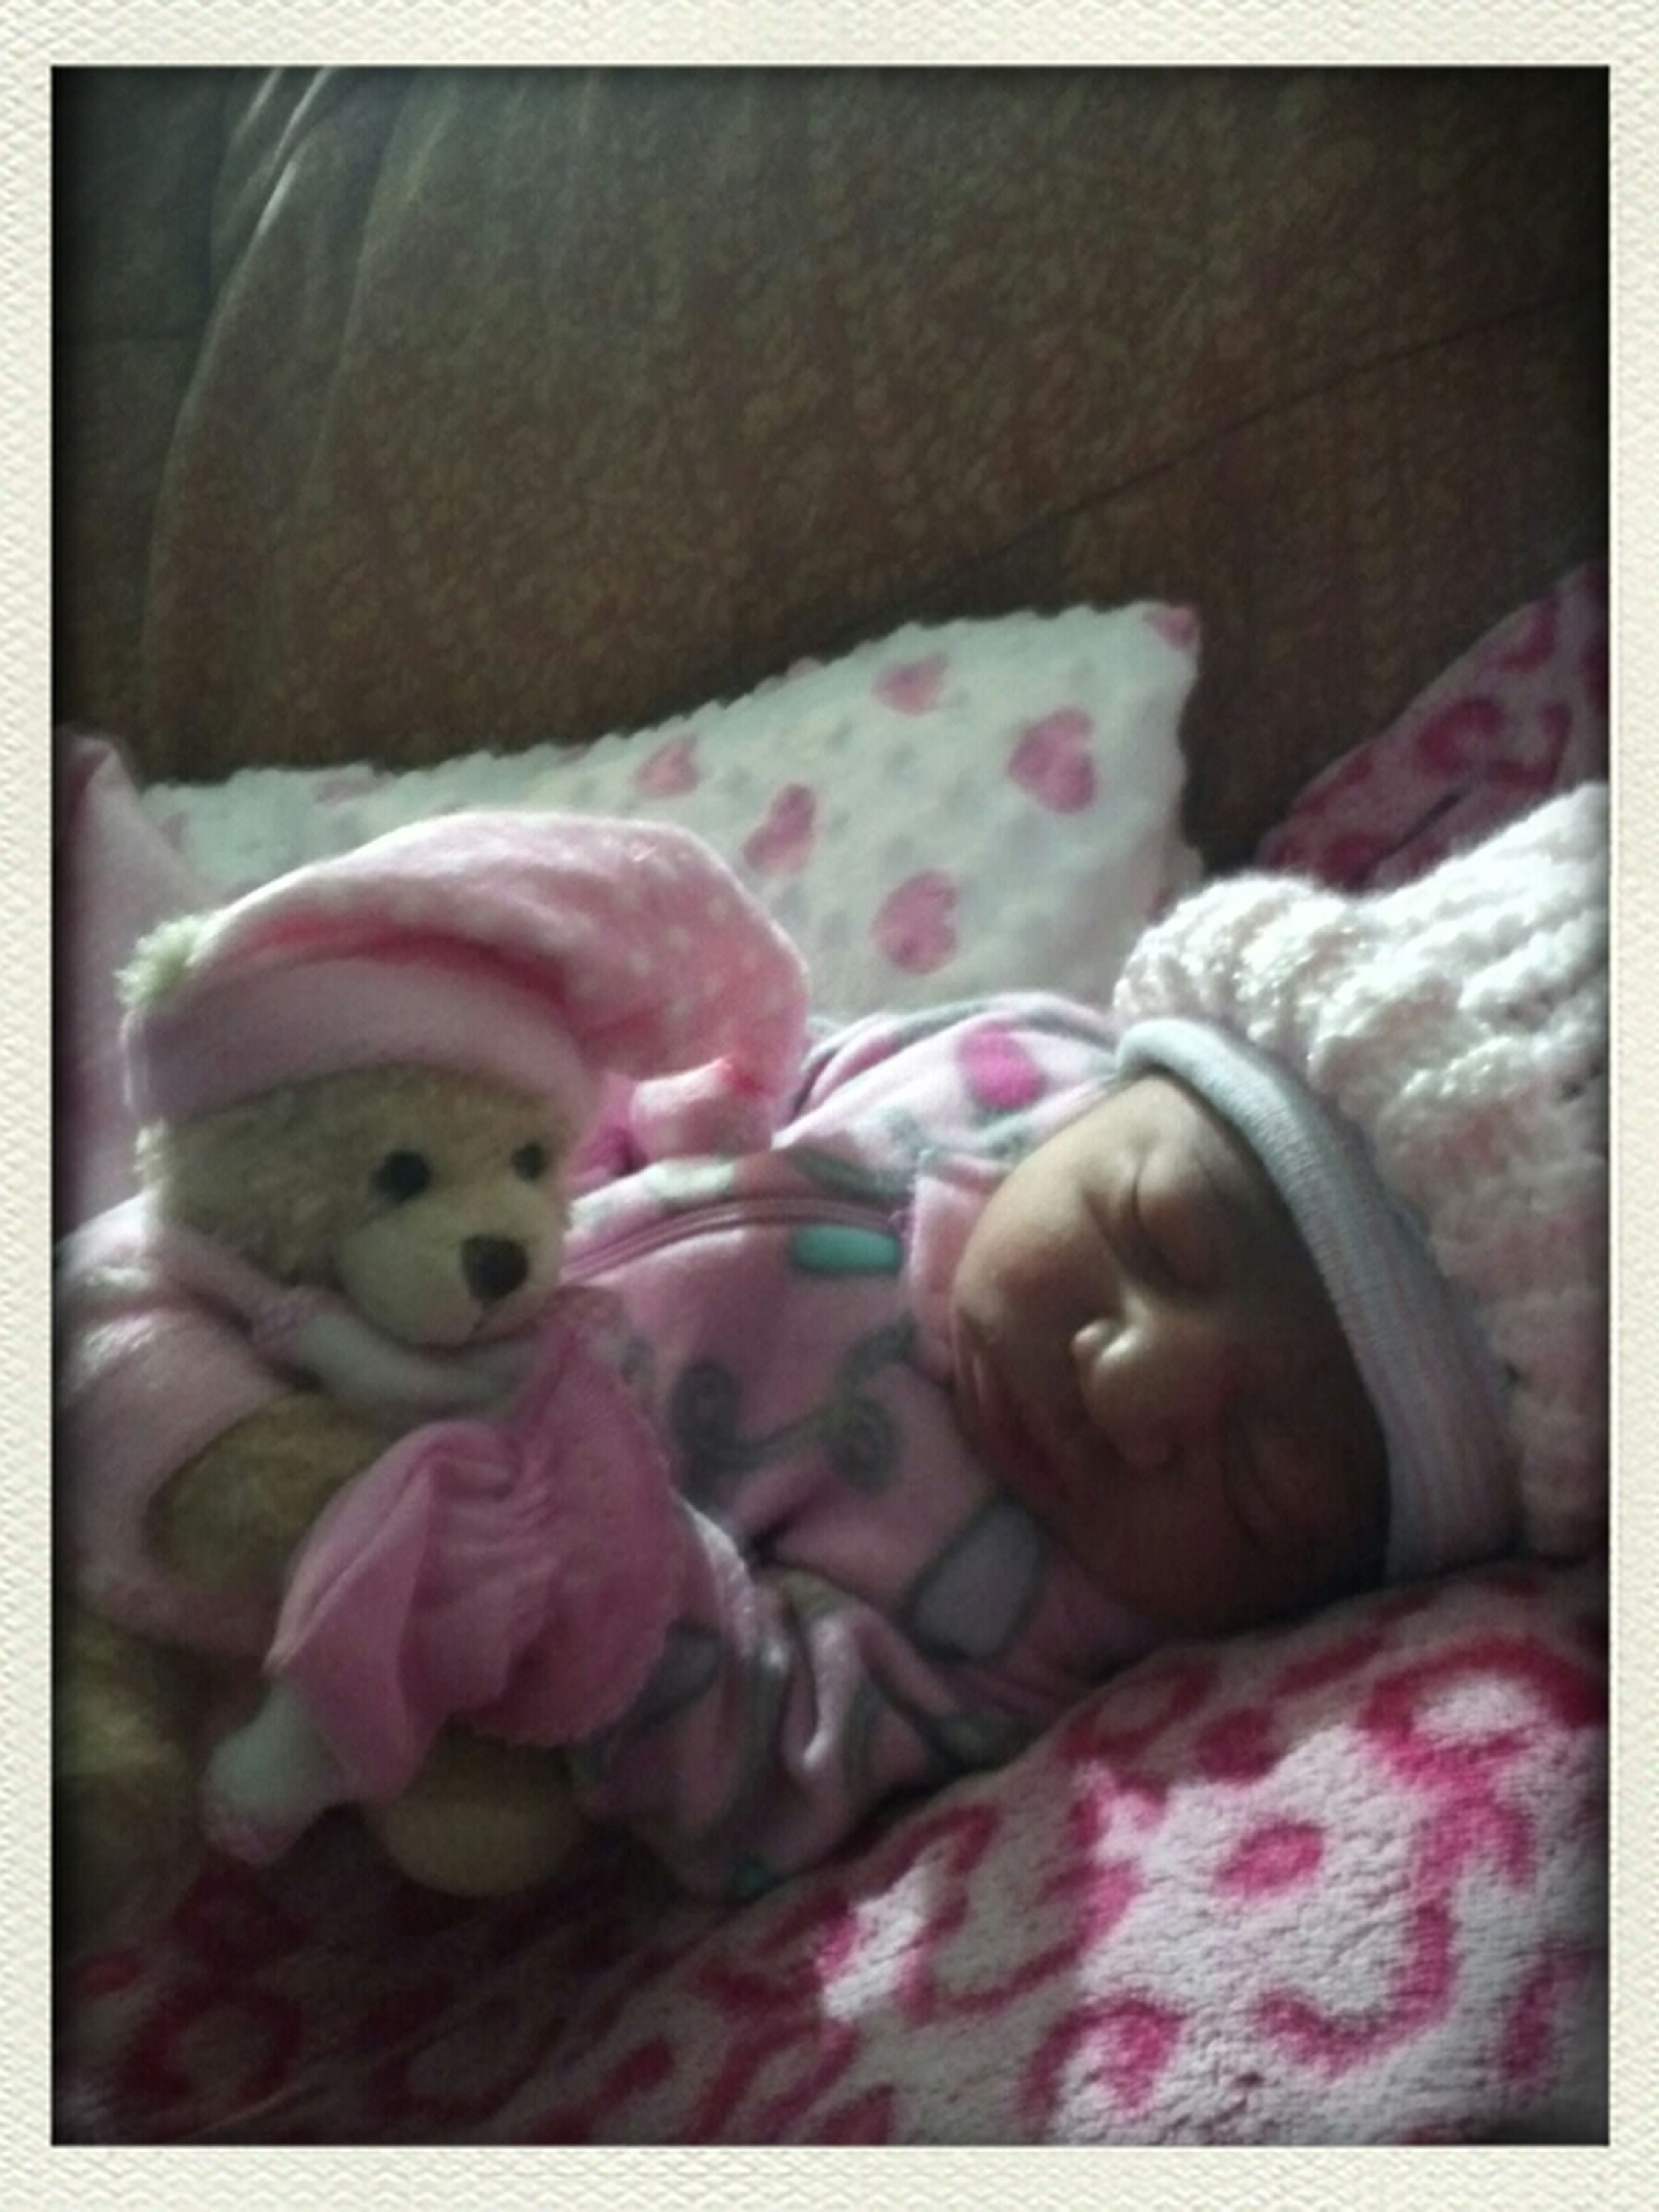 «3My precious babygirl, i love her soo much. Gods Beautiful creation so tiny and innocent«3